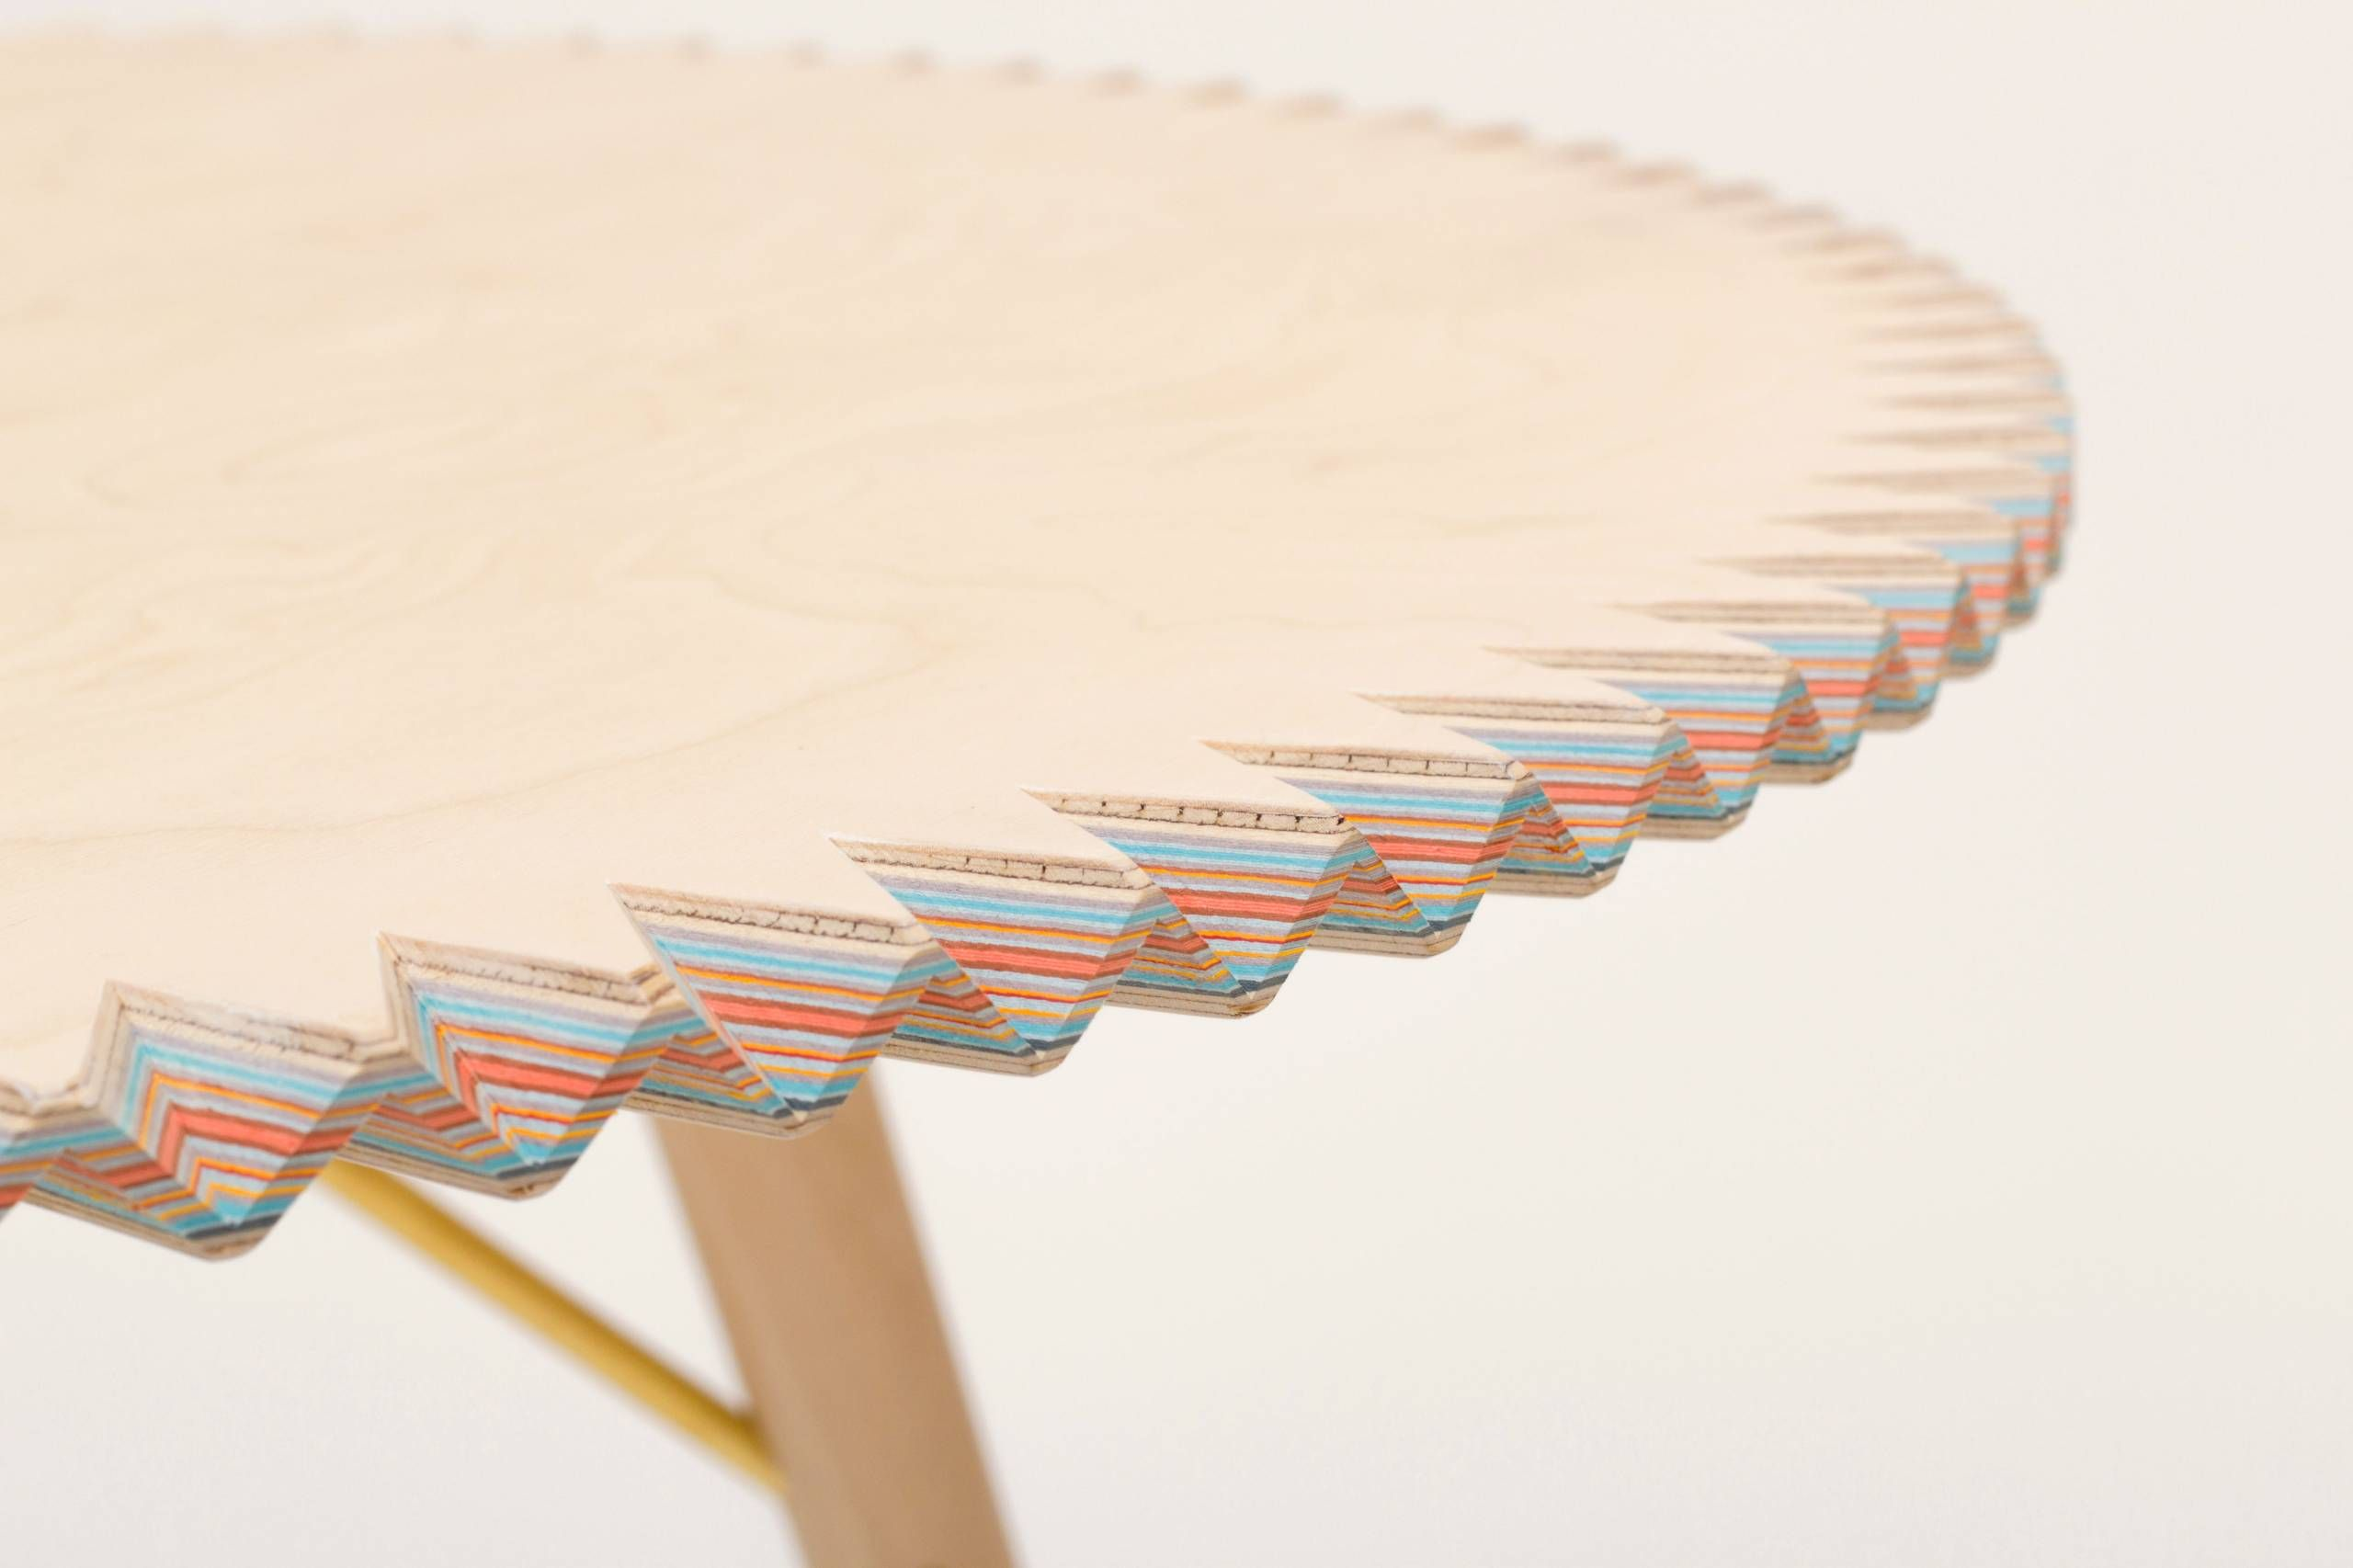 Breaking Surface Artsthread Cnc Furniture Plans Play Wood Plywood Furniture